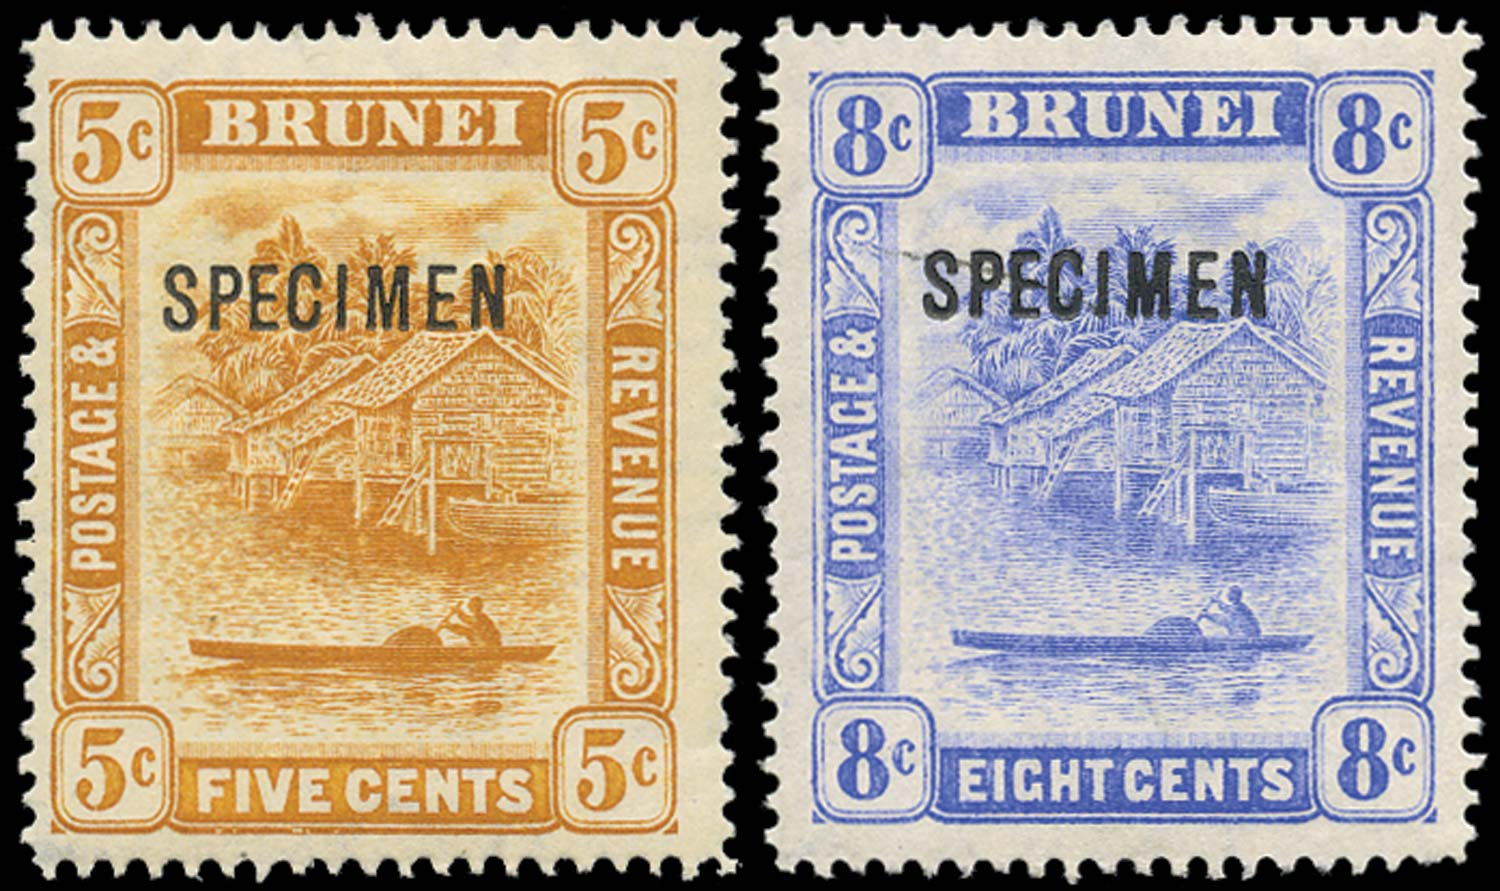 BRUNEI 1916  SG49s/50s Specimen 5c, 8c changed colours from single plates